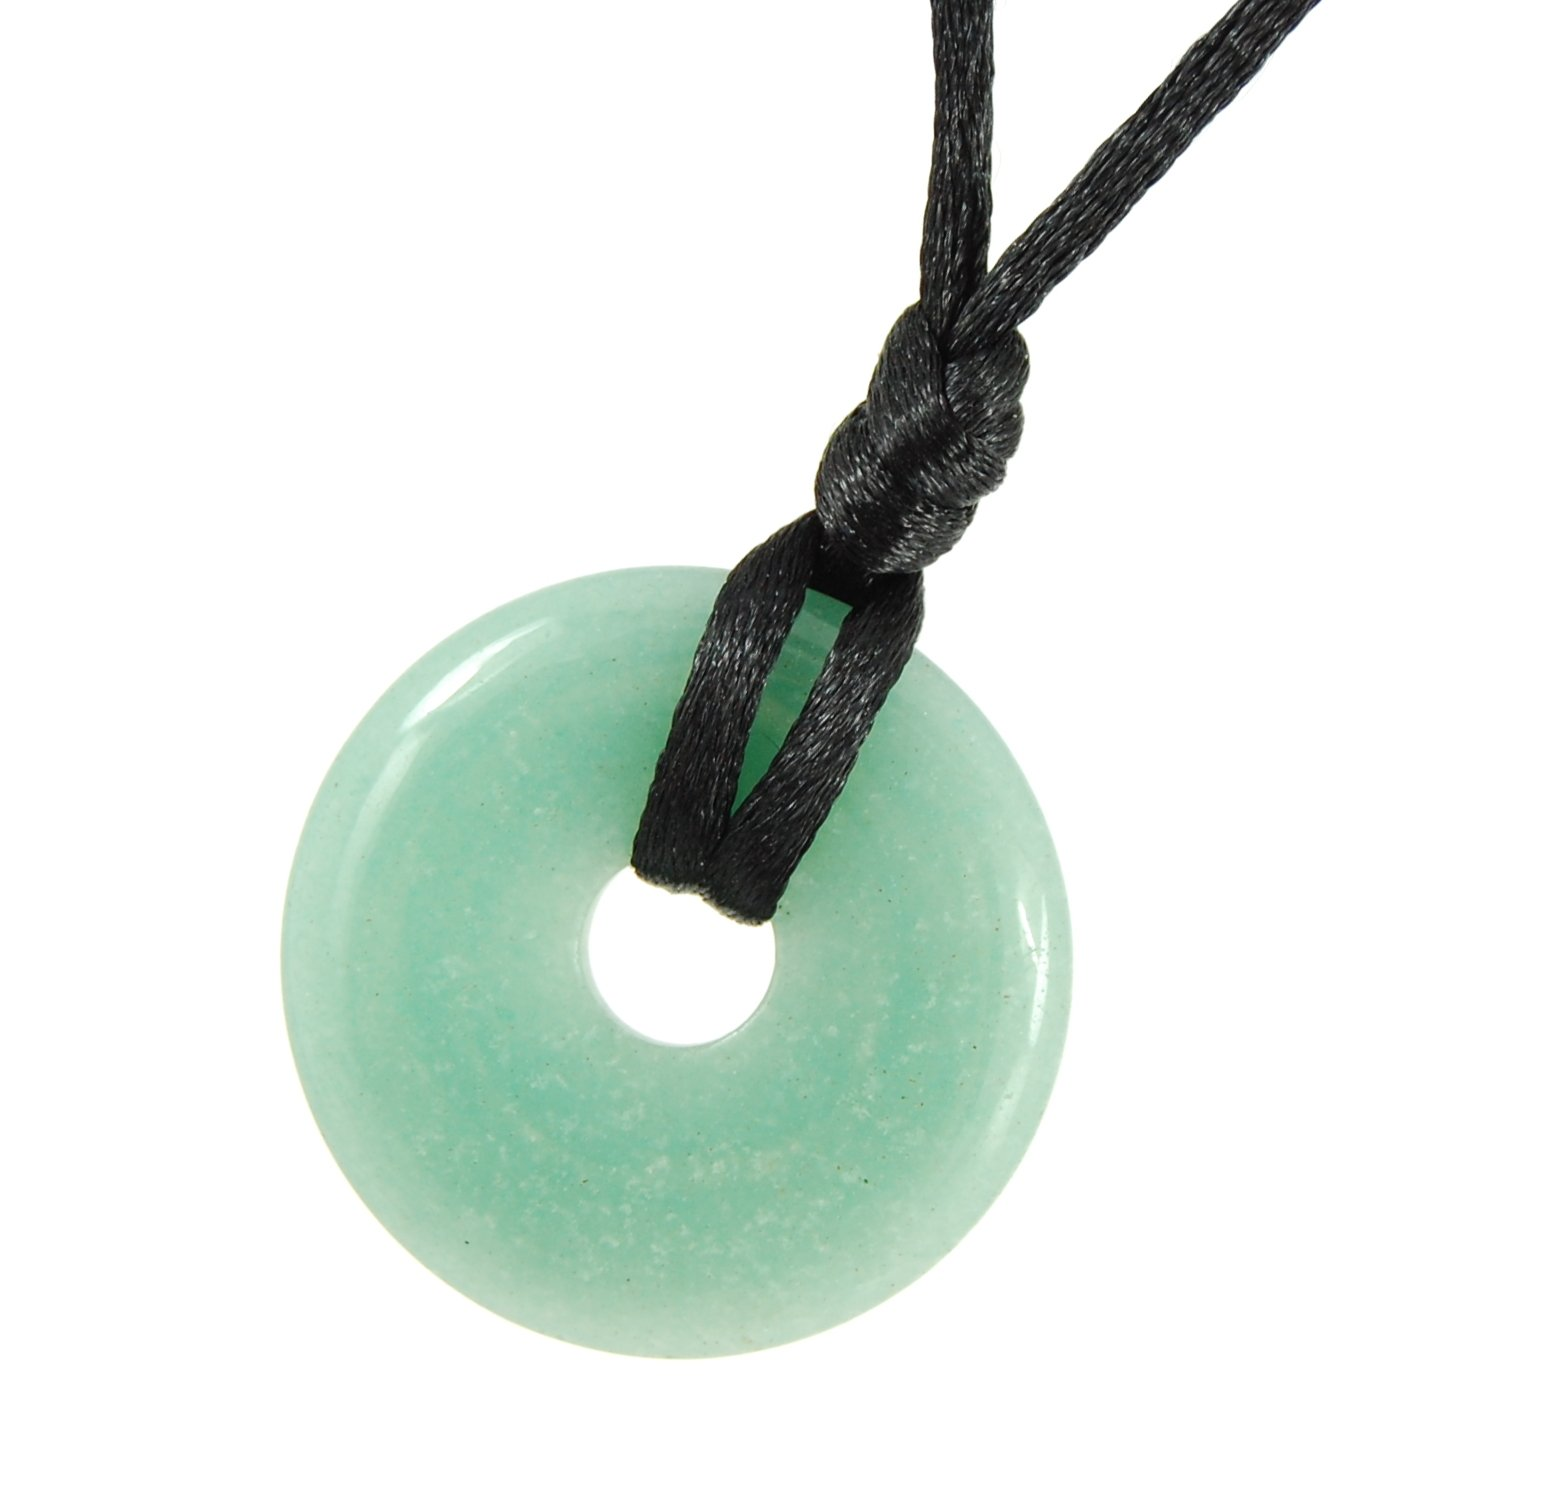 Steampunkers USA Stone Wheelies - 30mm Classic Green Aventurine - 20'' to 24'' Adjustable Soft Black Poly Woven Washable Cord - Natural Crystal Gemstone Collectibles Carved Necklace Handmade Charm